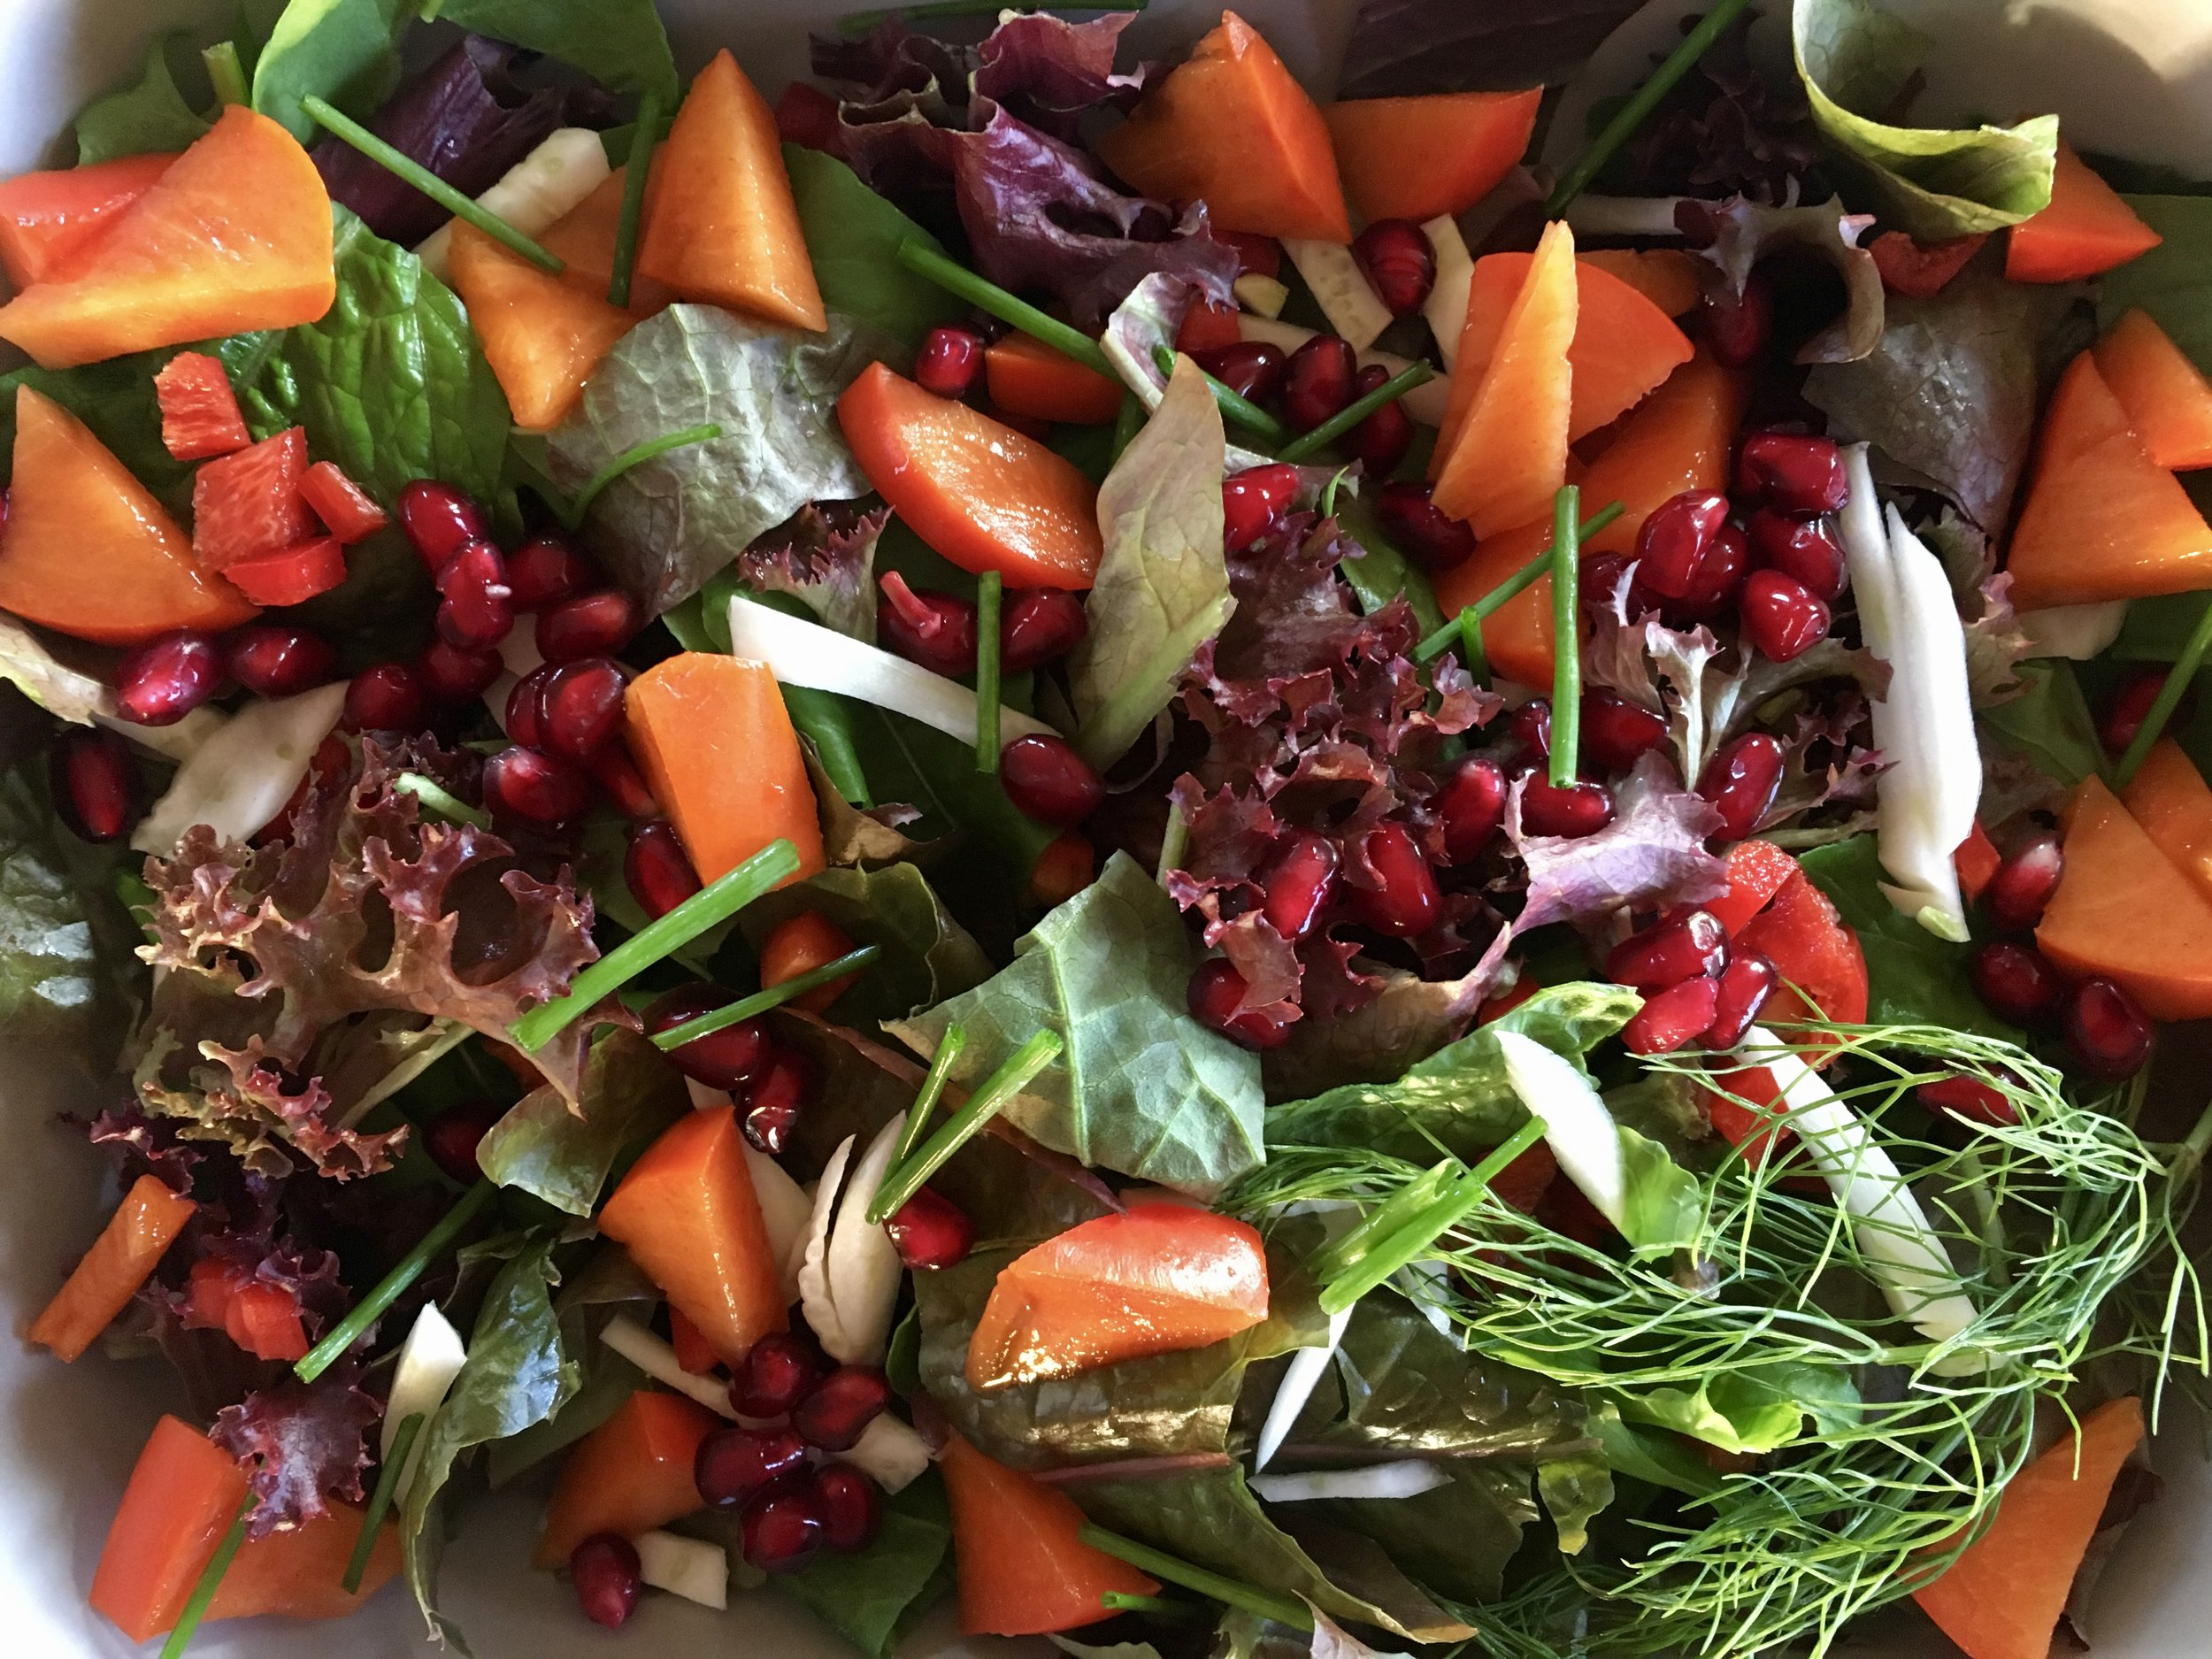 A winter garden salad with fall fruits.